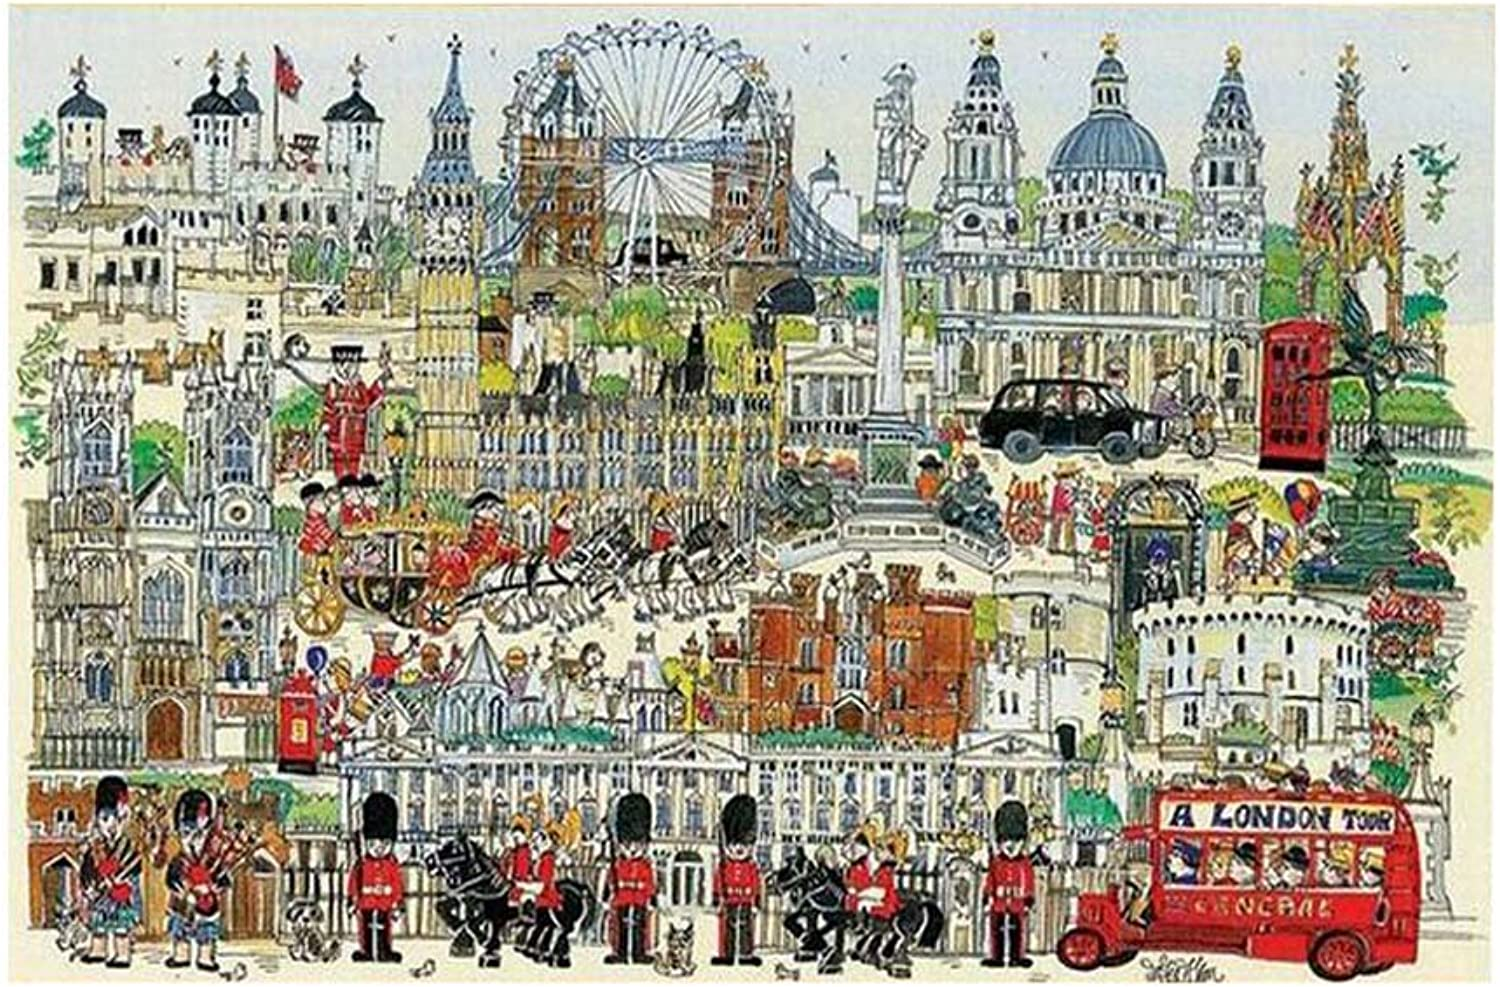 [London] 1000 Piece Wooden Jigsaw Puzzles Classic Jigsaw Puzzles Toy